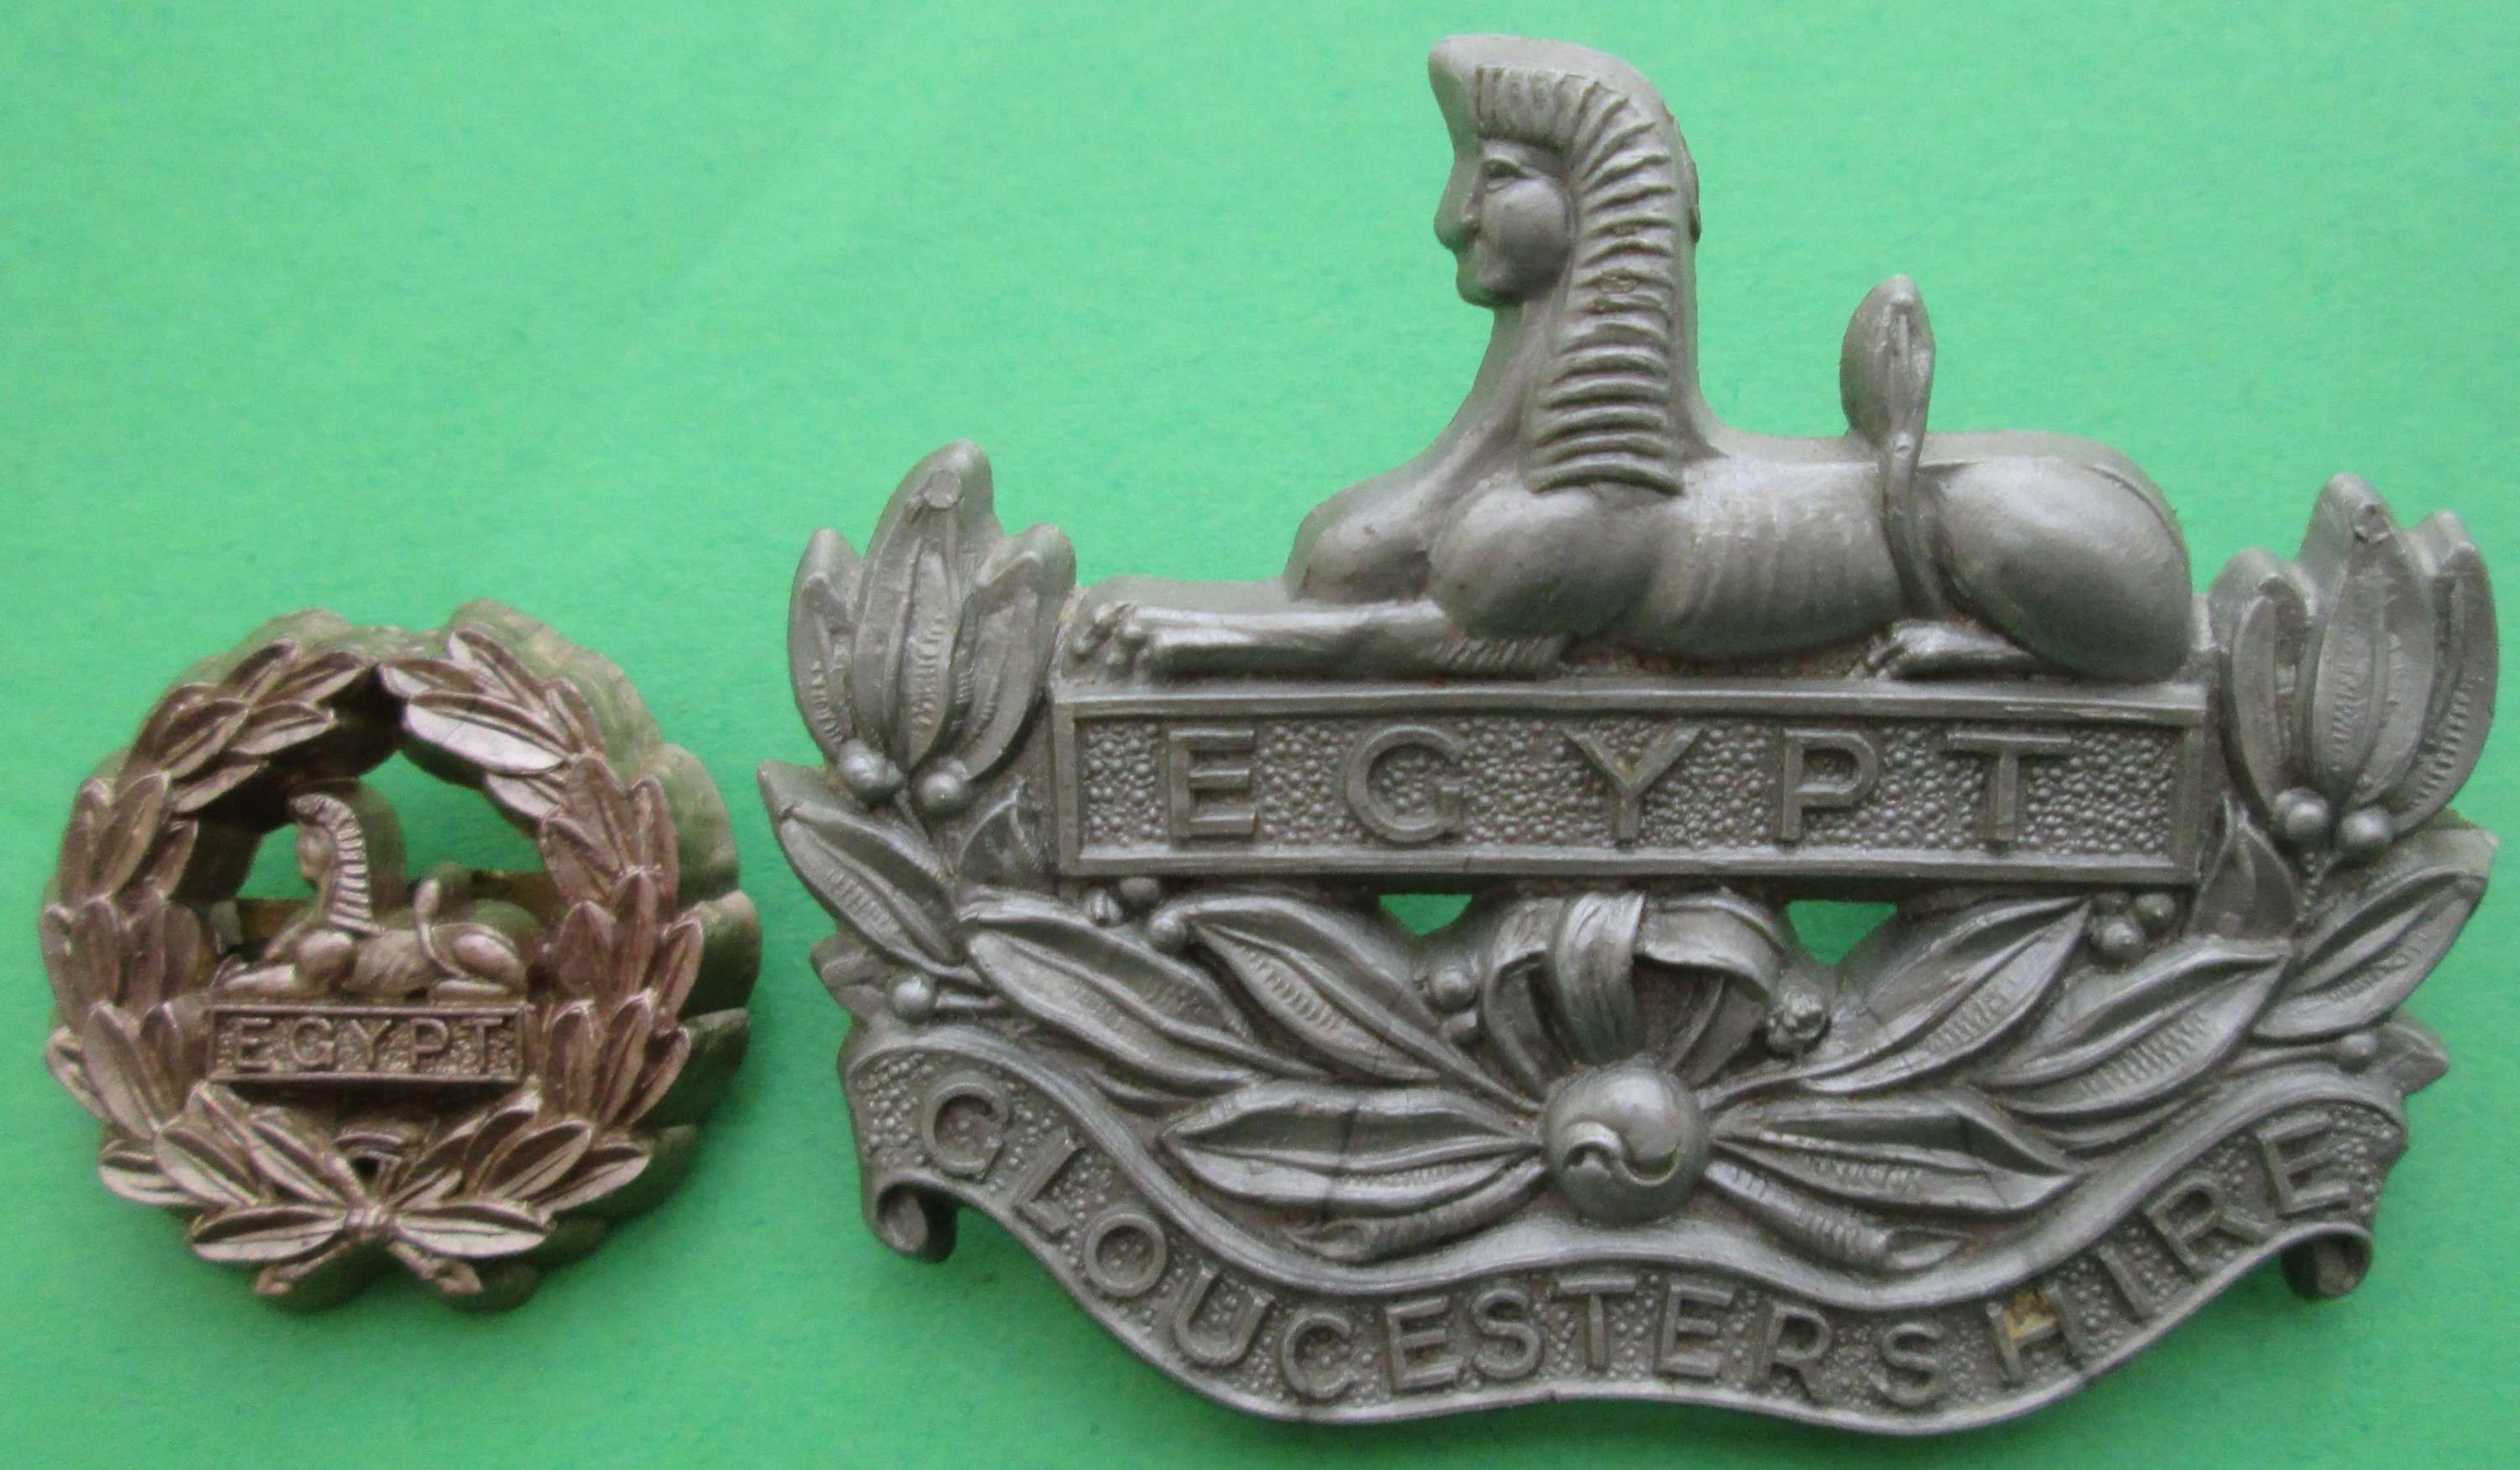 WWII PERIOD PLASTIC GLOUCESTERSHIRE CAP AND REAR BADGE